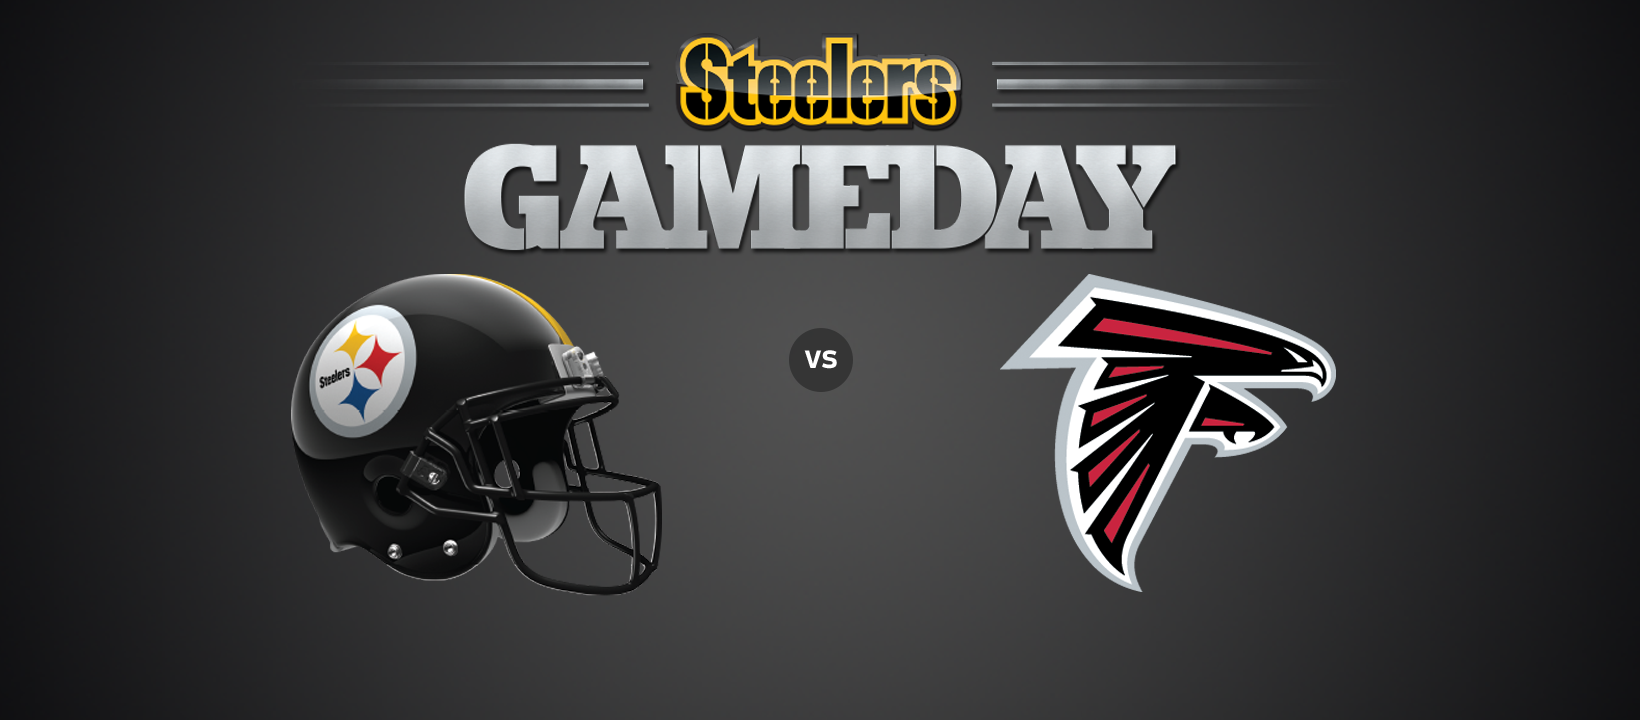 Steelers vs Falcons 2017 Preseason Game time and online